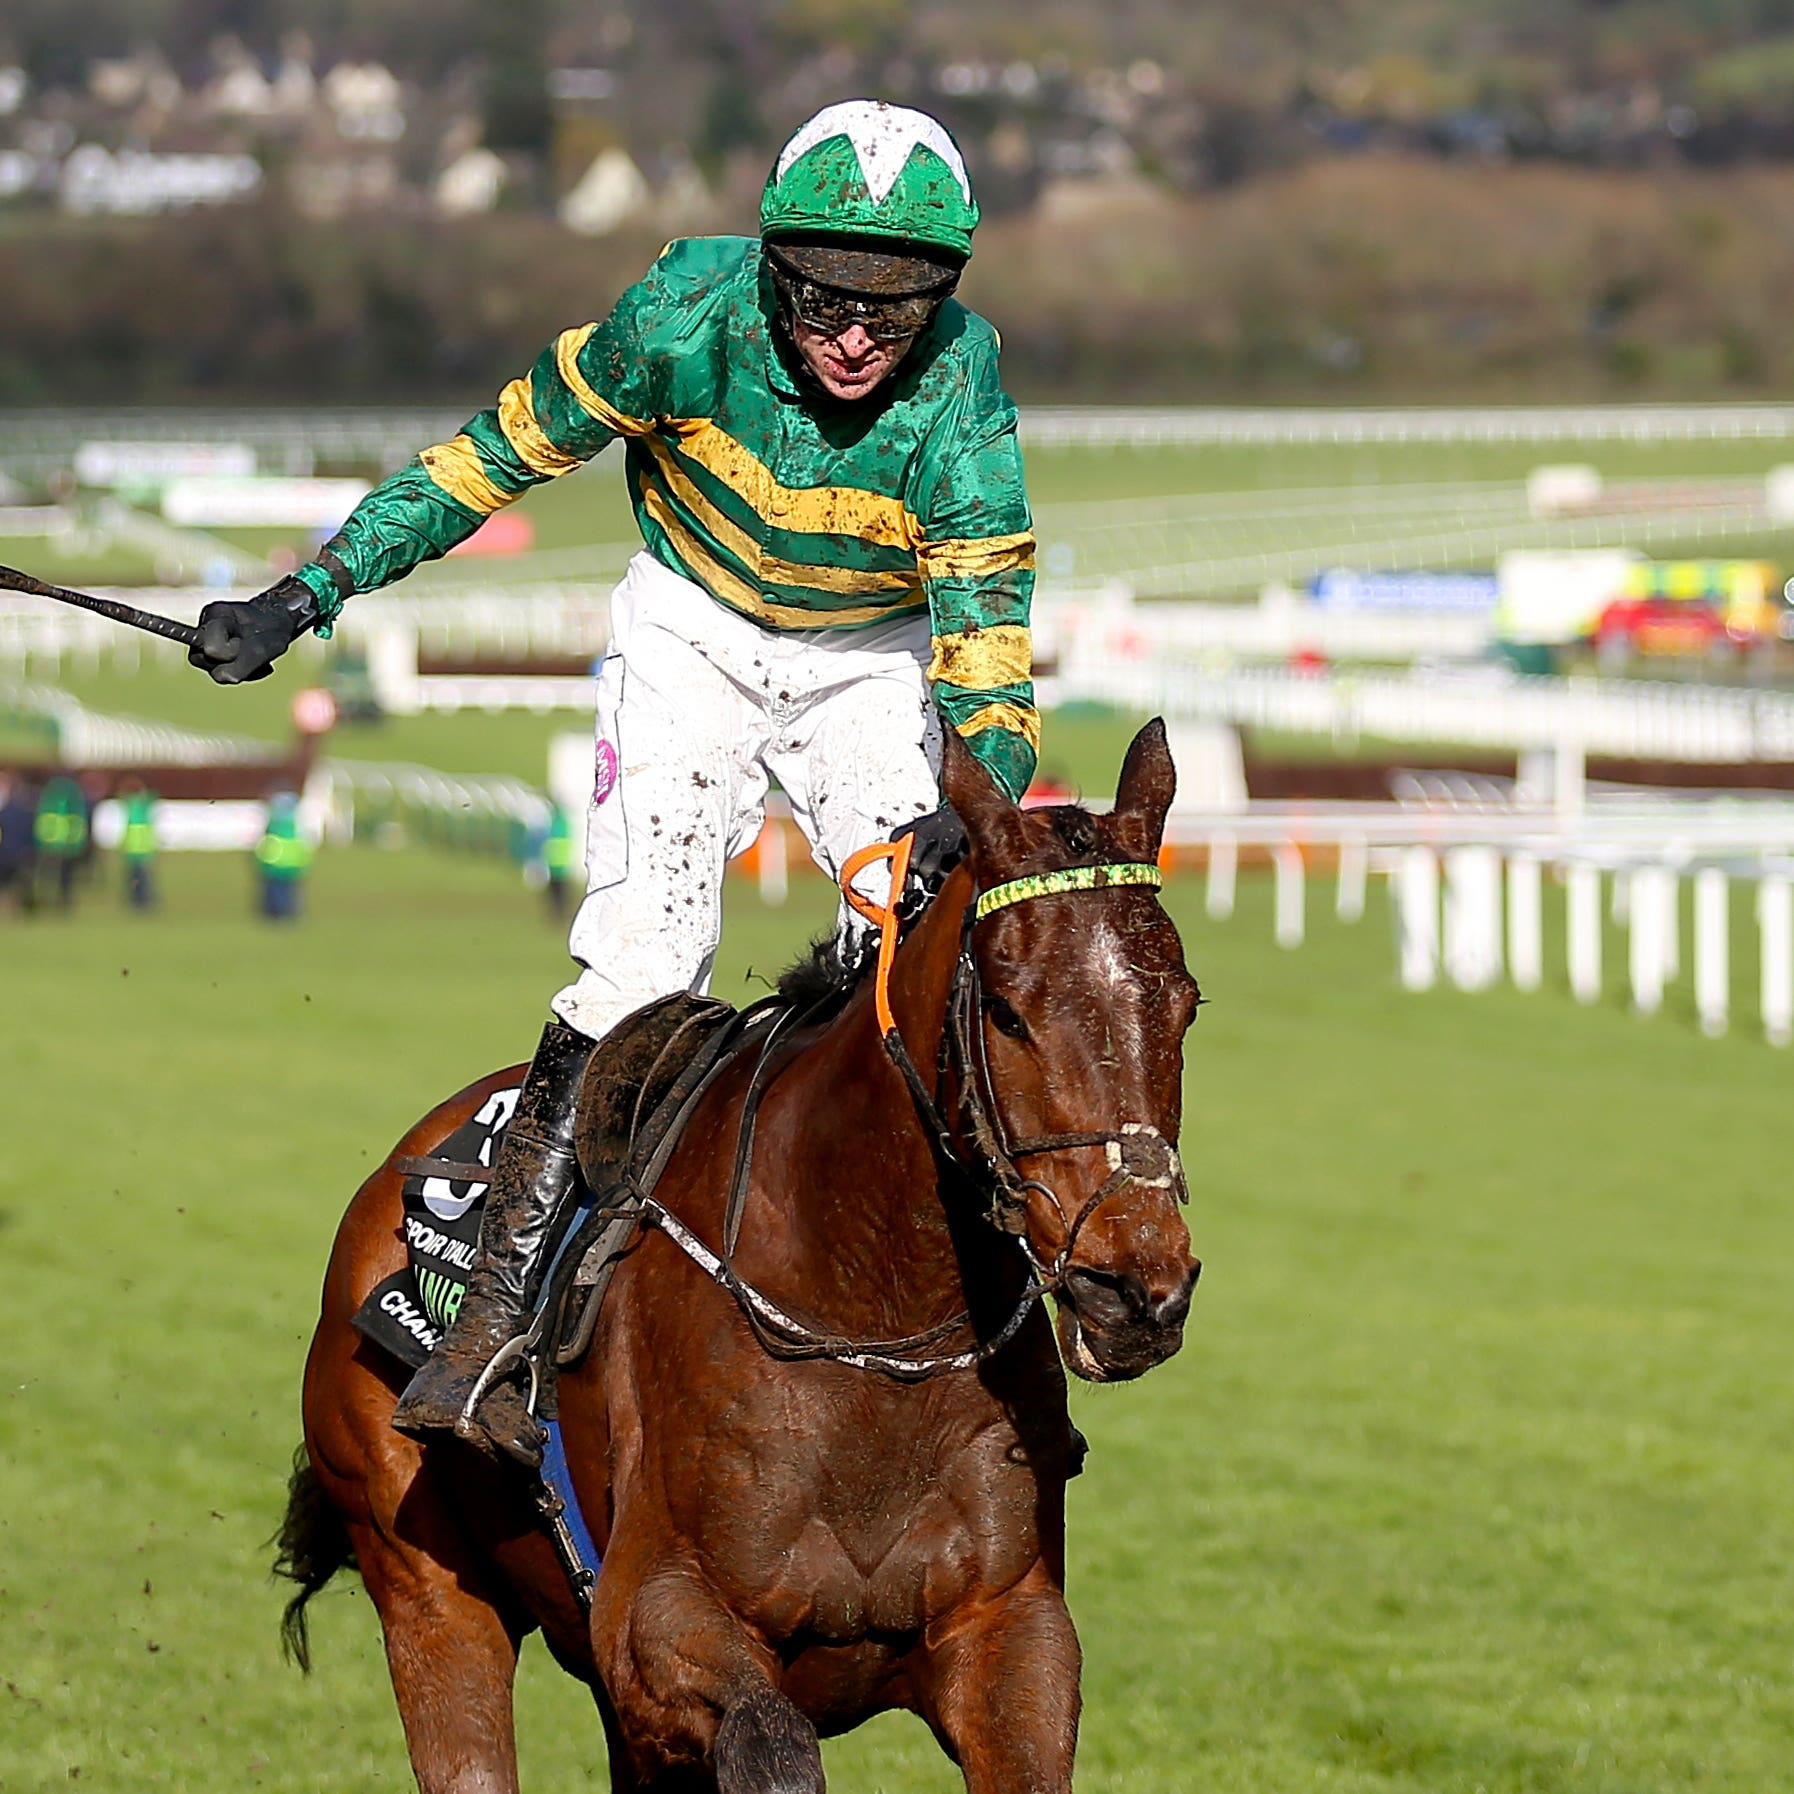 Espoir D'Allen and jockey Mark Walsh on their way to winning the Unibet Champion Hurdle on day one of the Cheltenham Festival